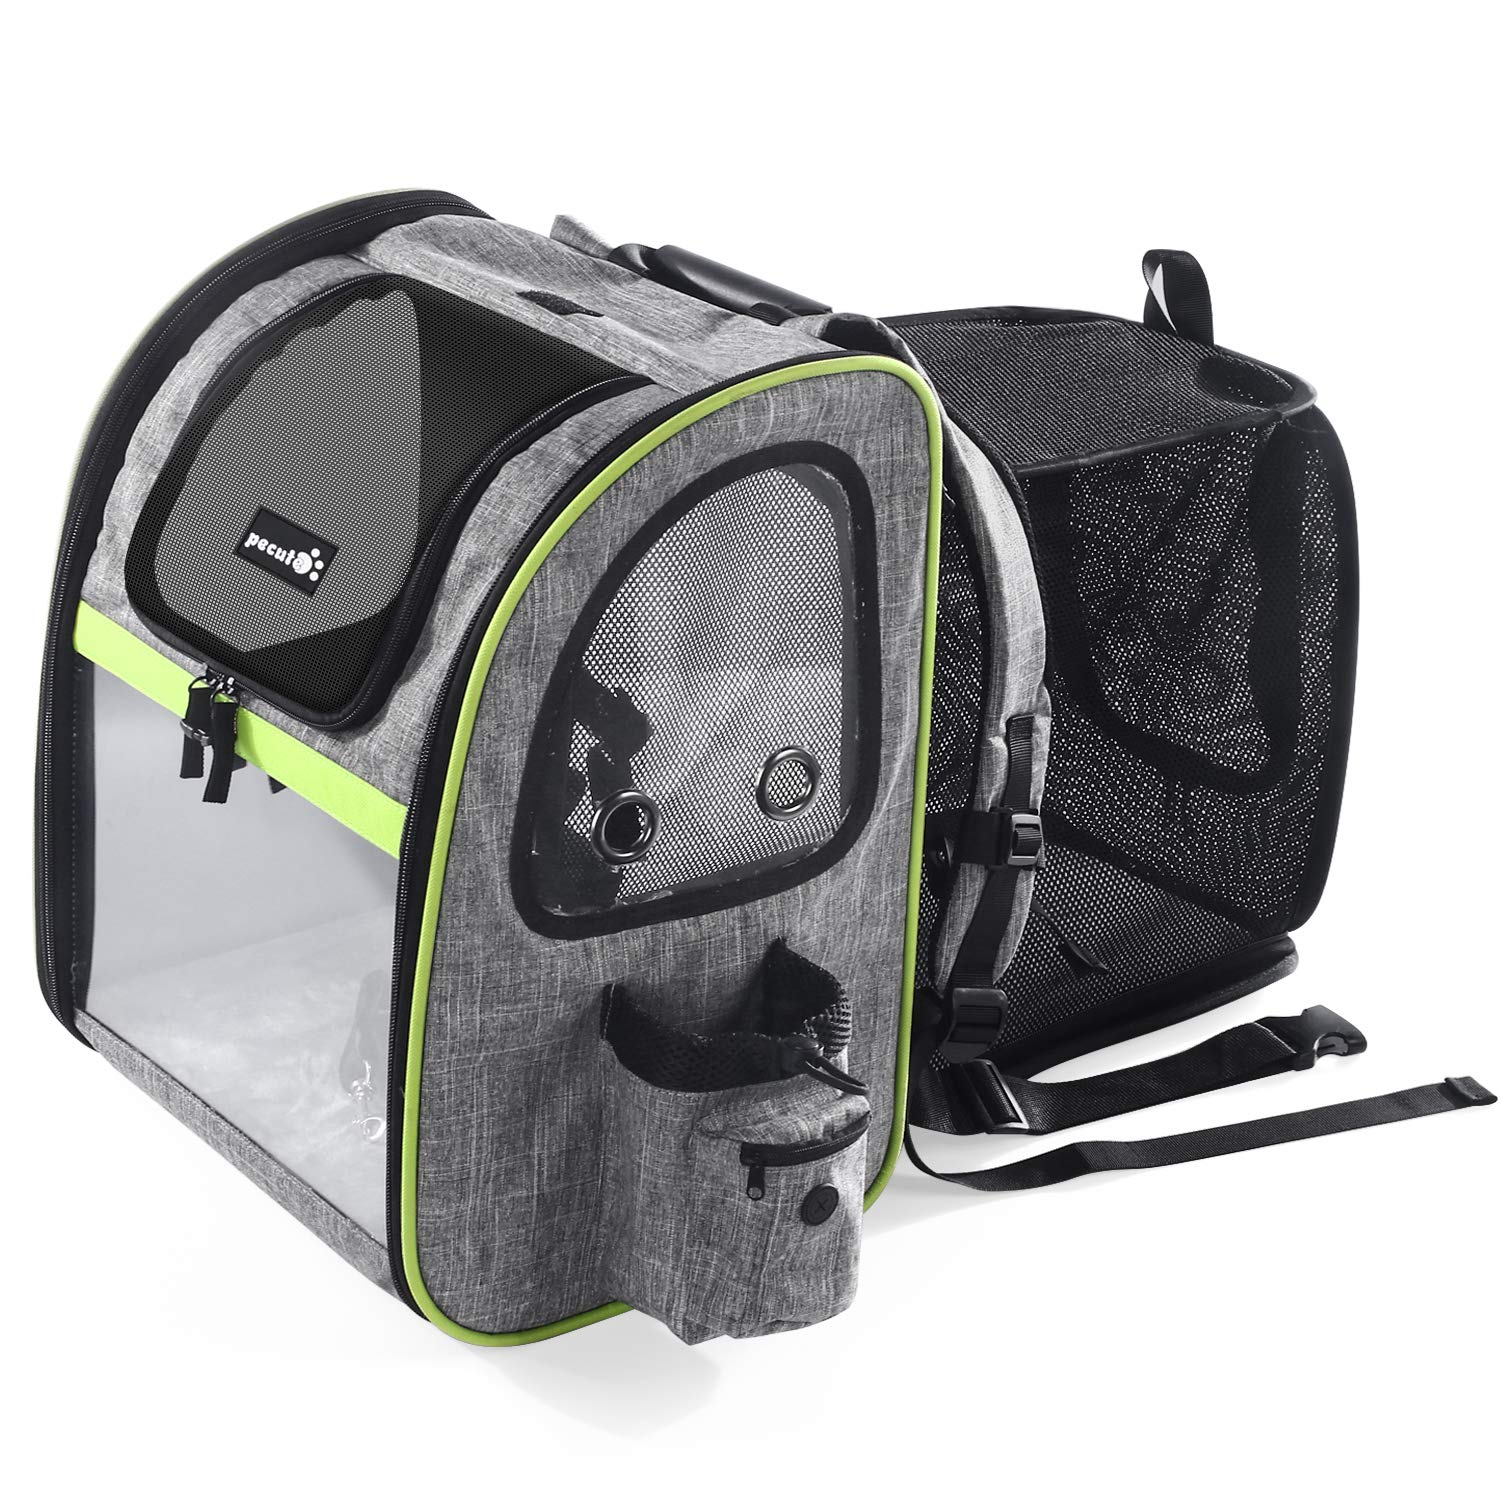 Pecute Cat Carrier Dog Backpack Expandable, Portable Breathable Rucksack with Top Opening-Visible Acrylic-Safety Belt-Pockets, Extendable Back More Space Great For Carrying Puppy Dogs Cats Up to 10KG